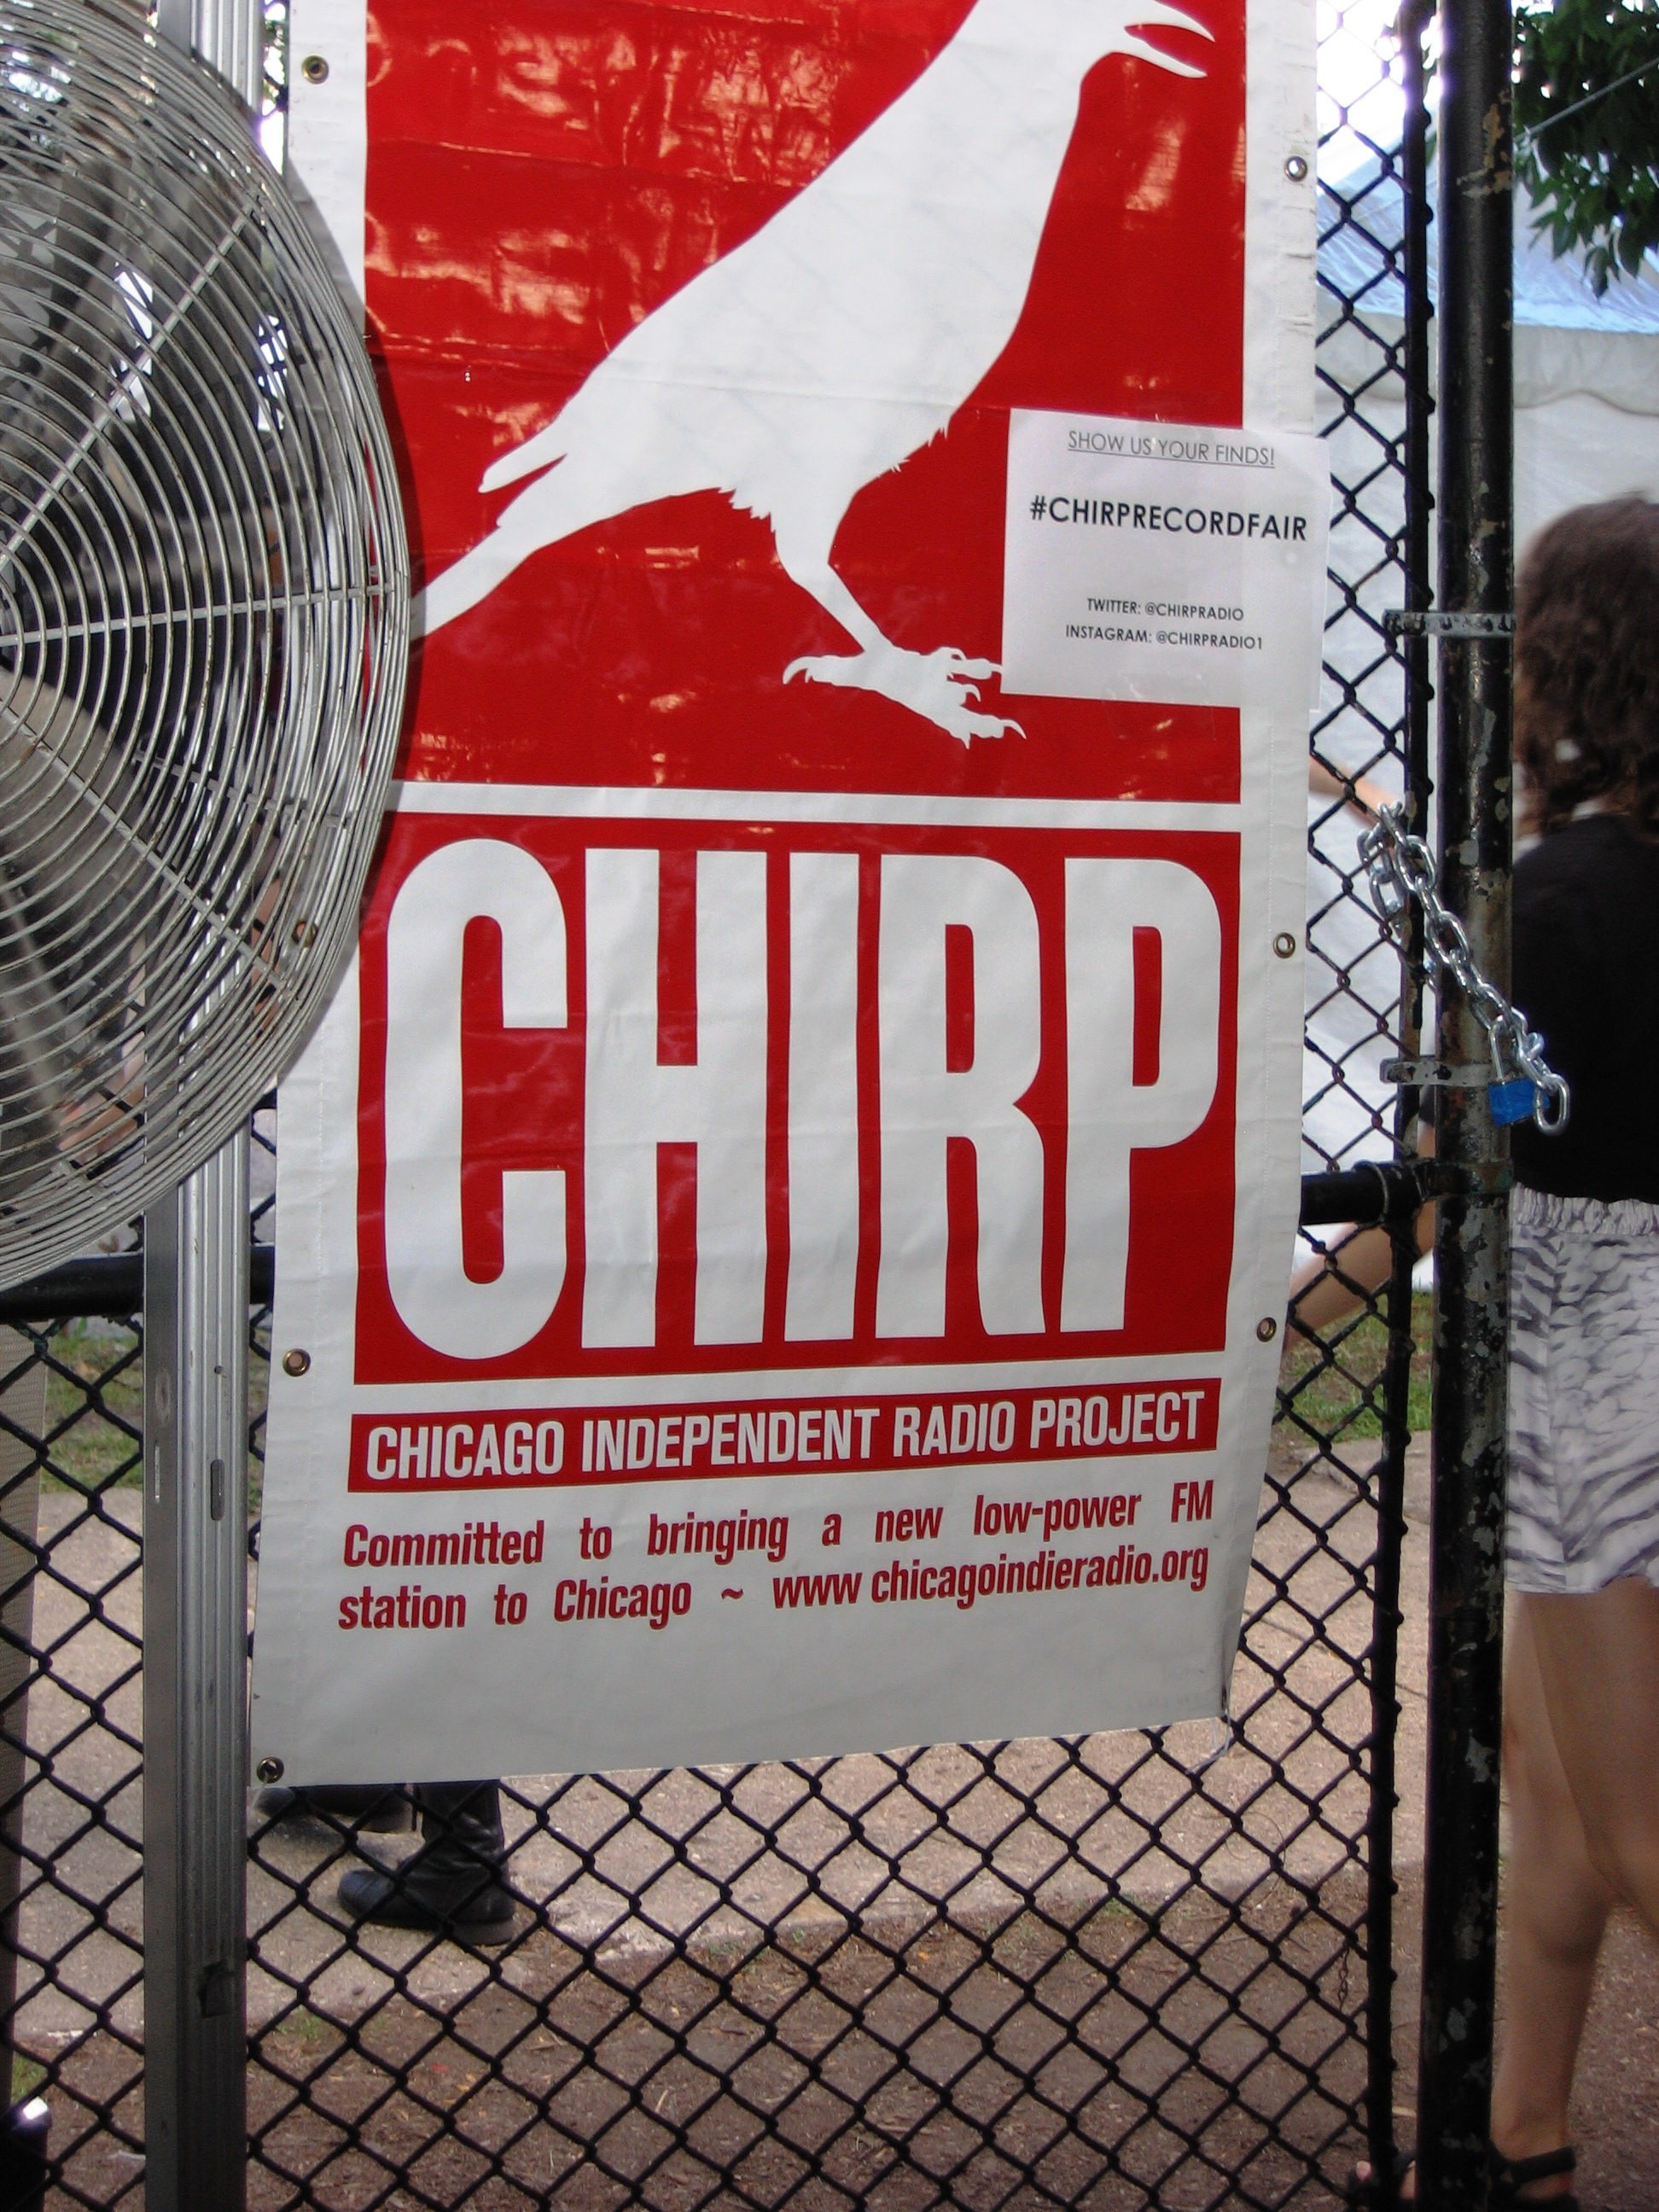 Pics from the 2015 Pitchfork Music Festival and CHIRP Record